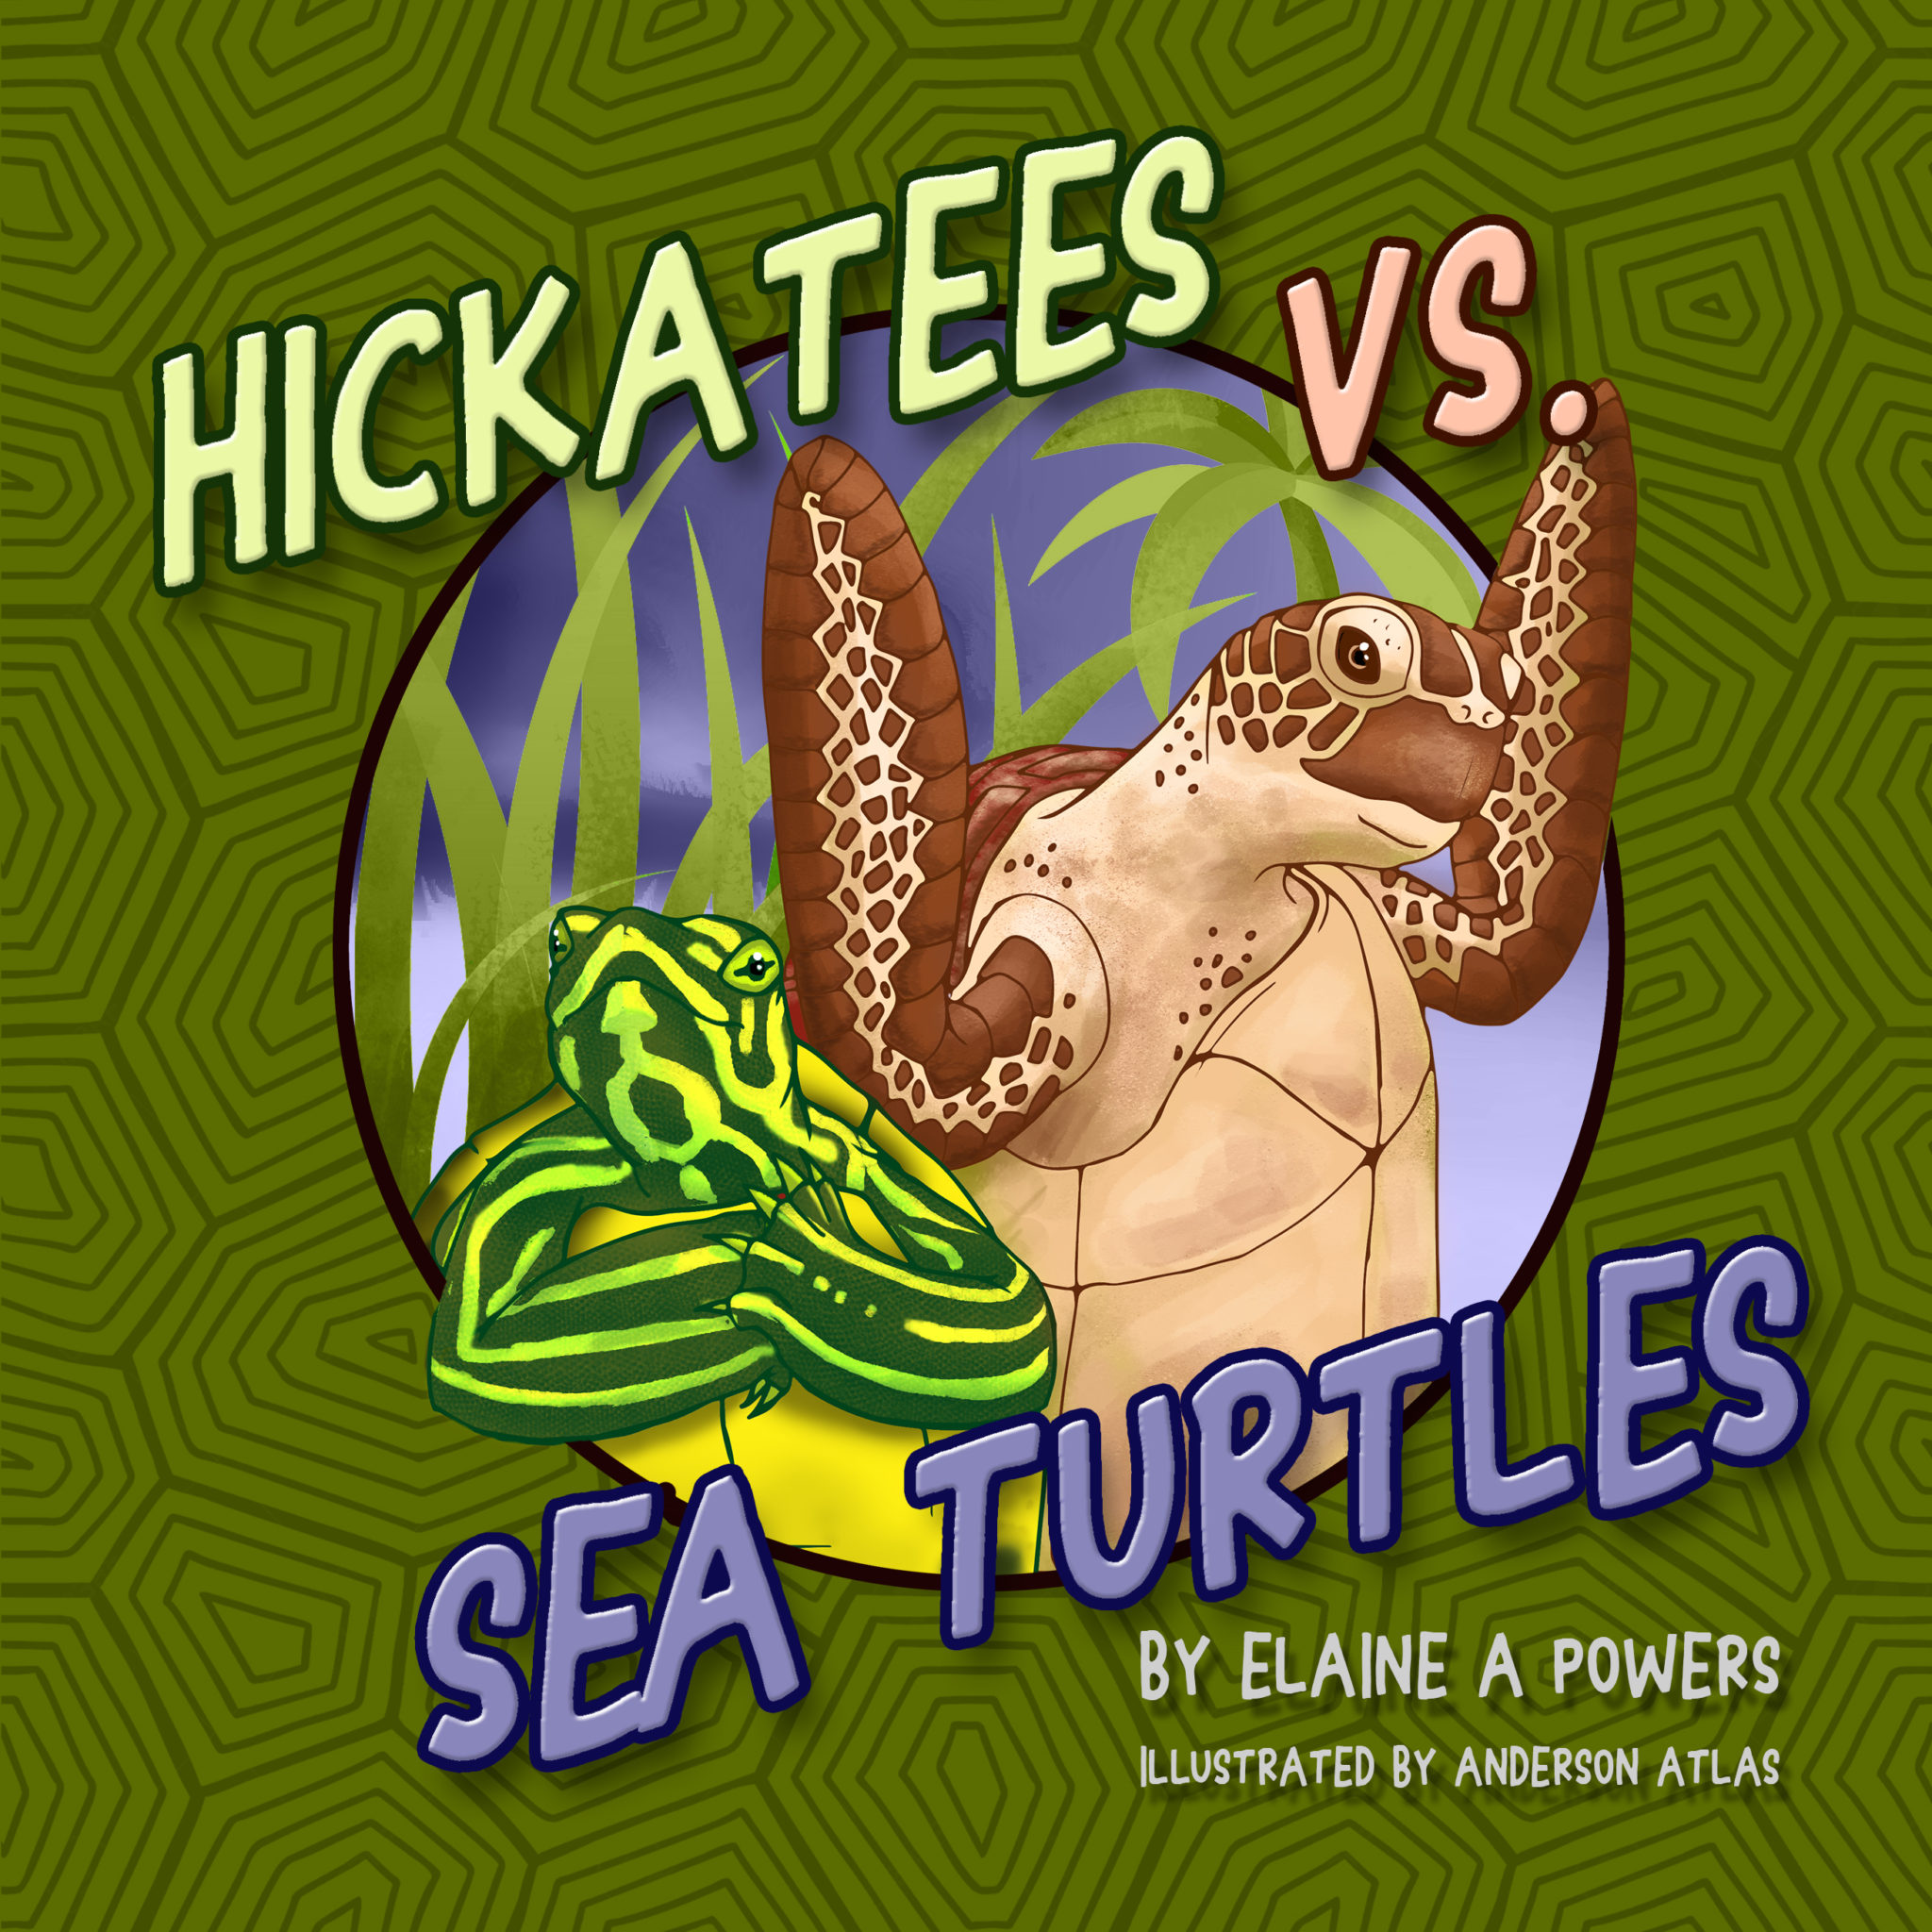 olive green book cover with illustrations of a hickatee and a sea turtle